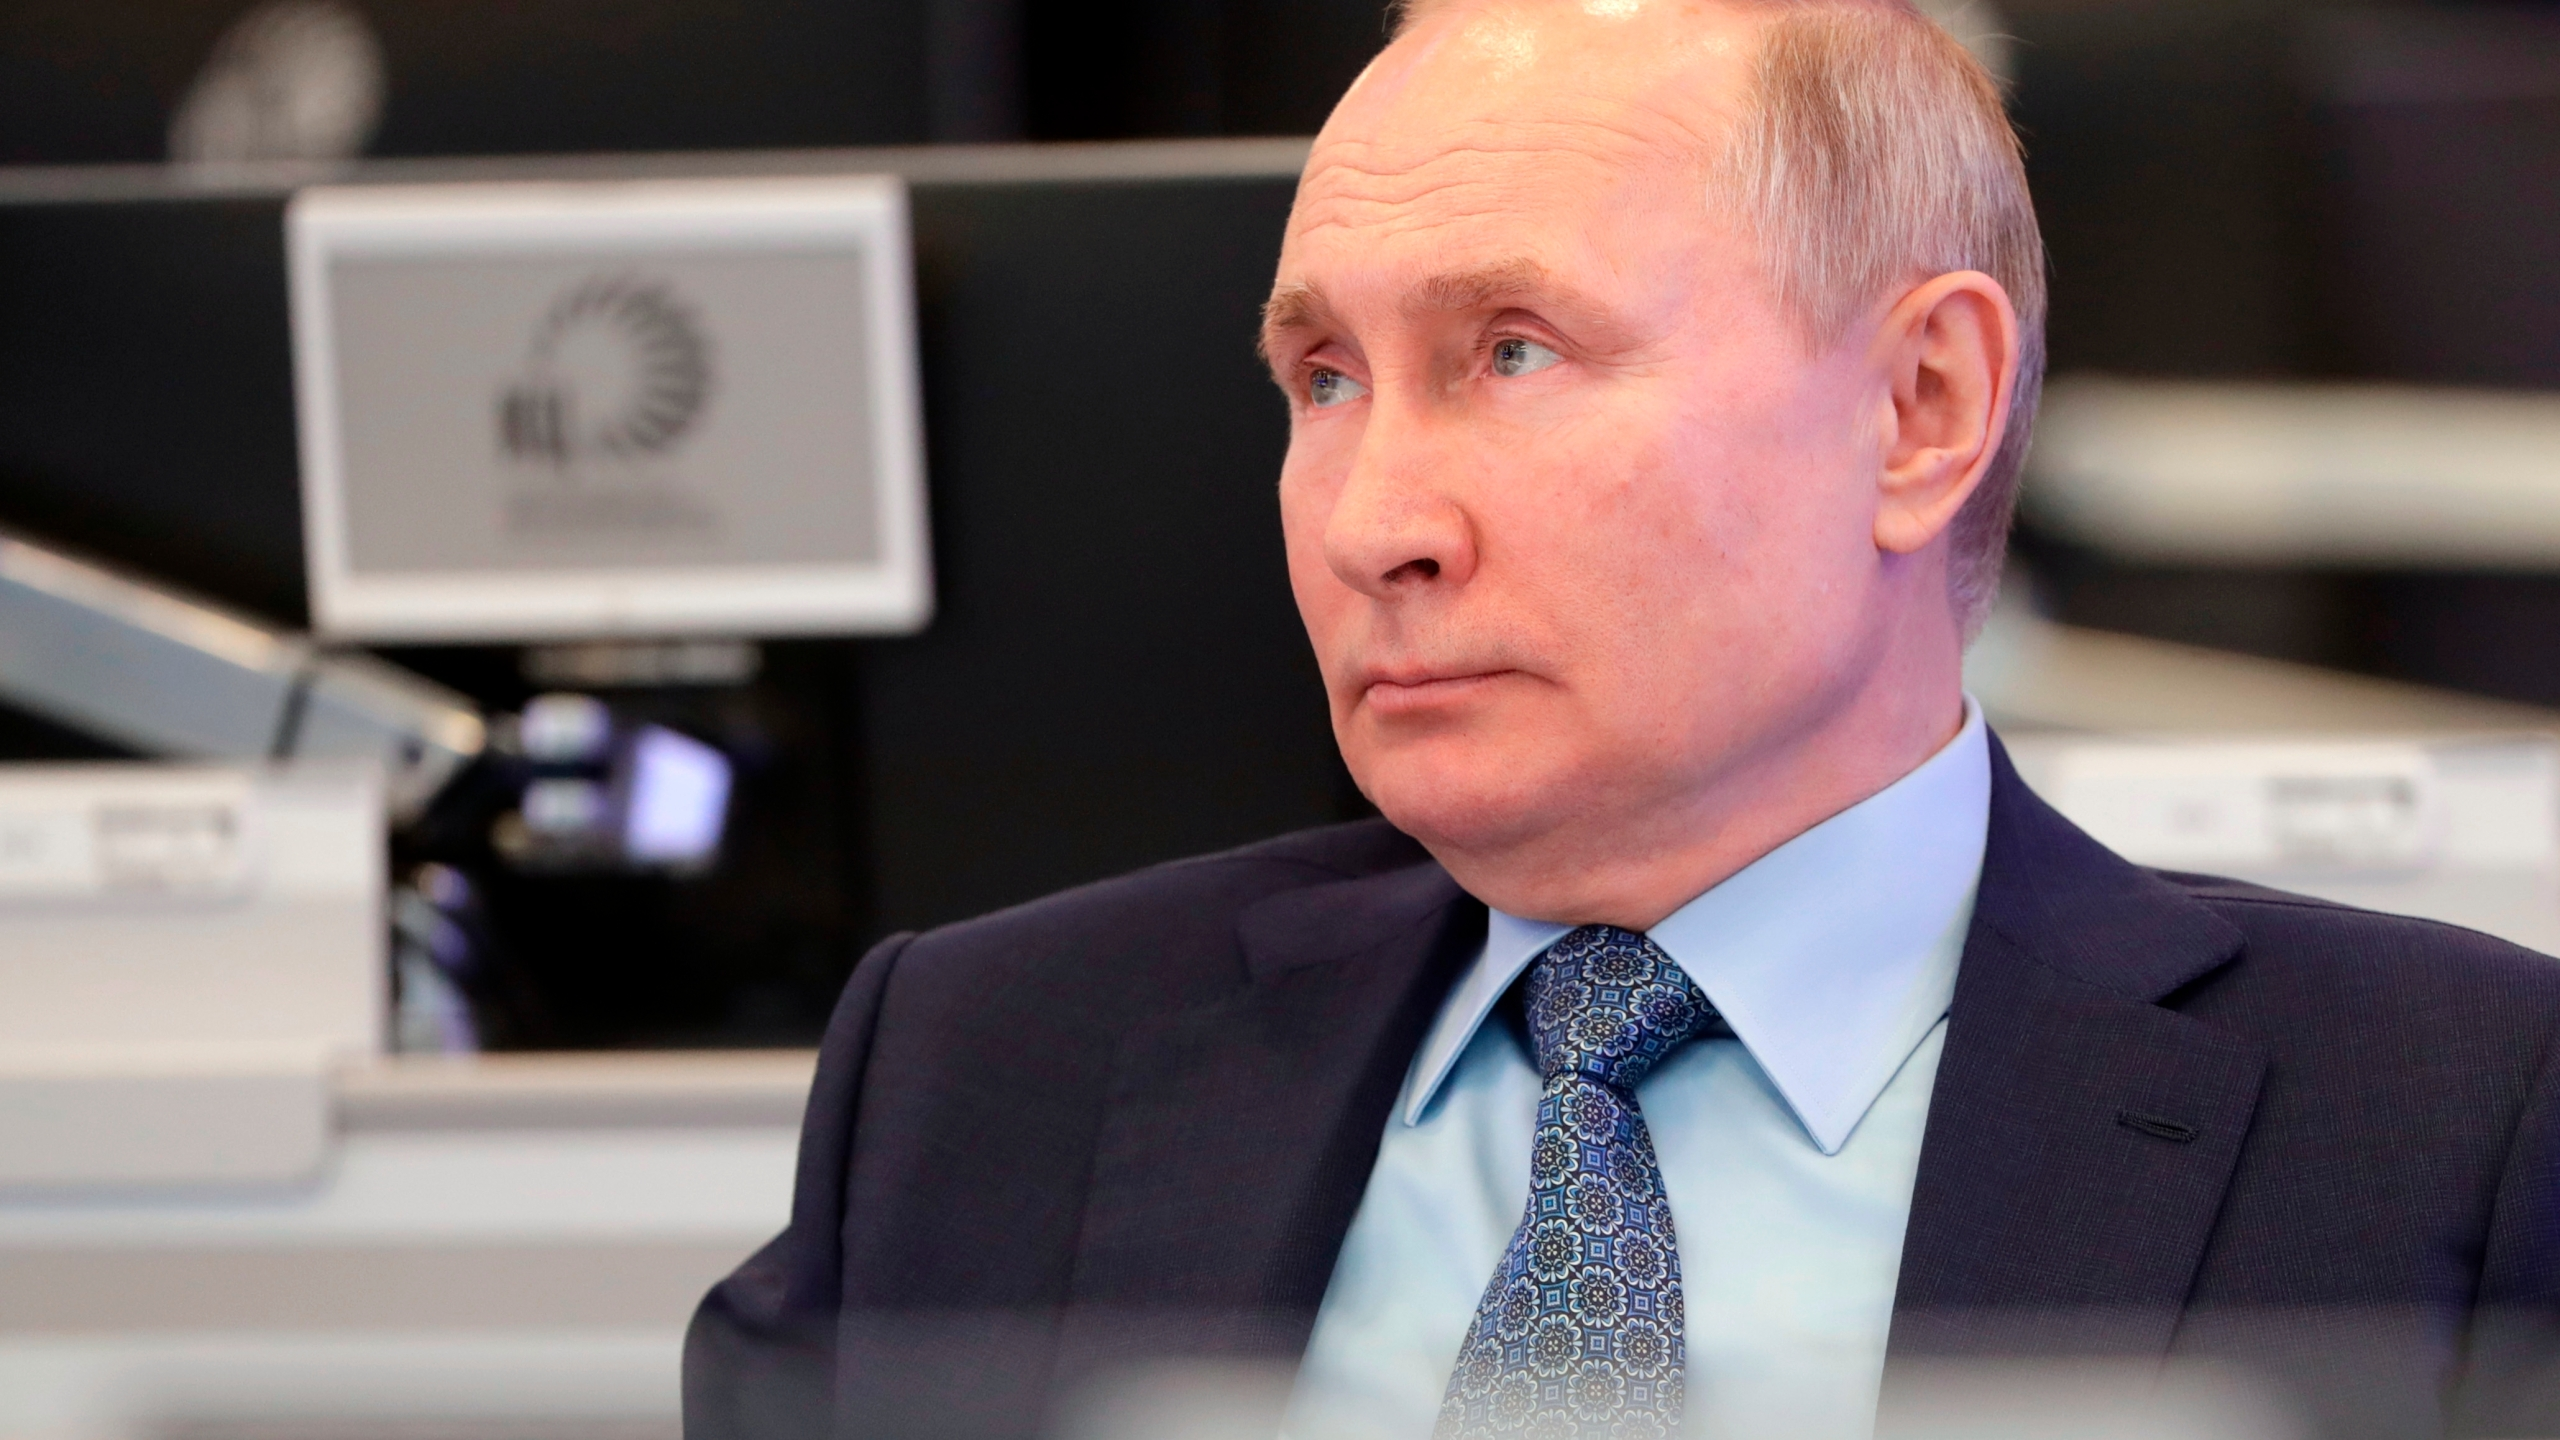 Russian President Vladimir Putin visits the Coordination Center of the Russian Government in Moscow, Russia on April 13, 2021. (Mikhail Metzel, Sputnik, Kremlin Pool Photo via AP)